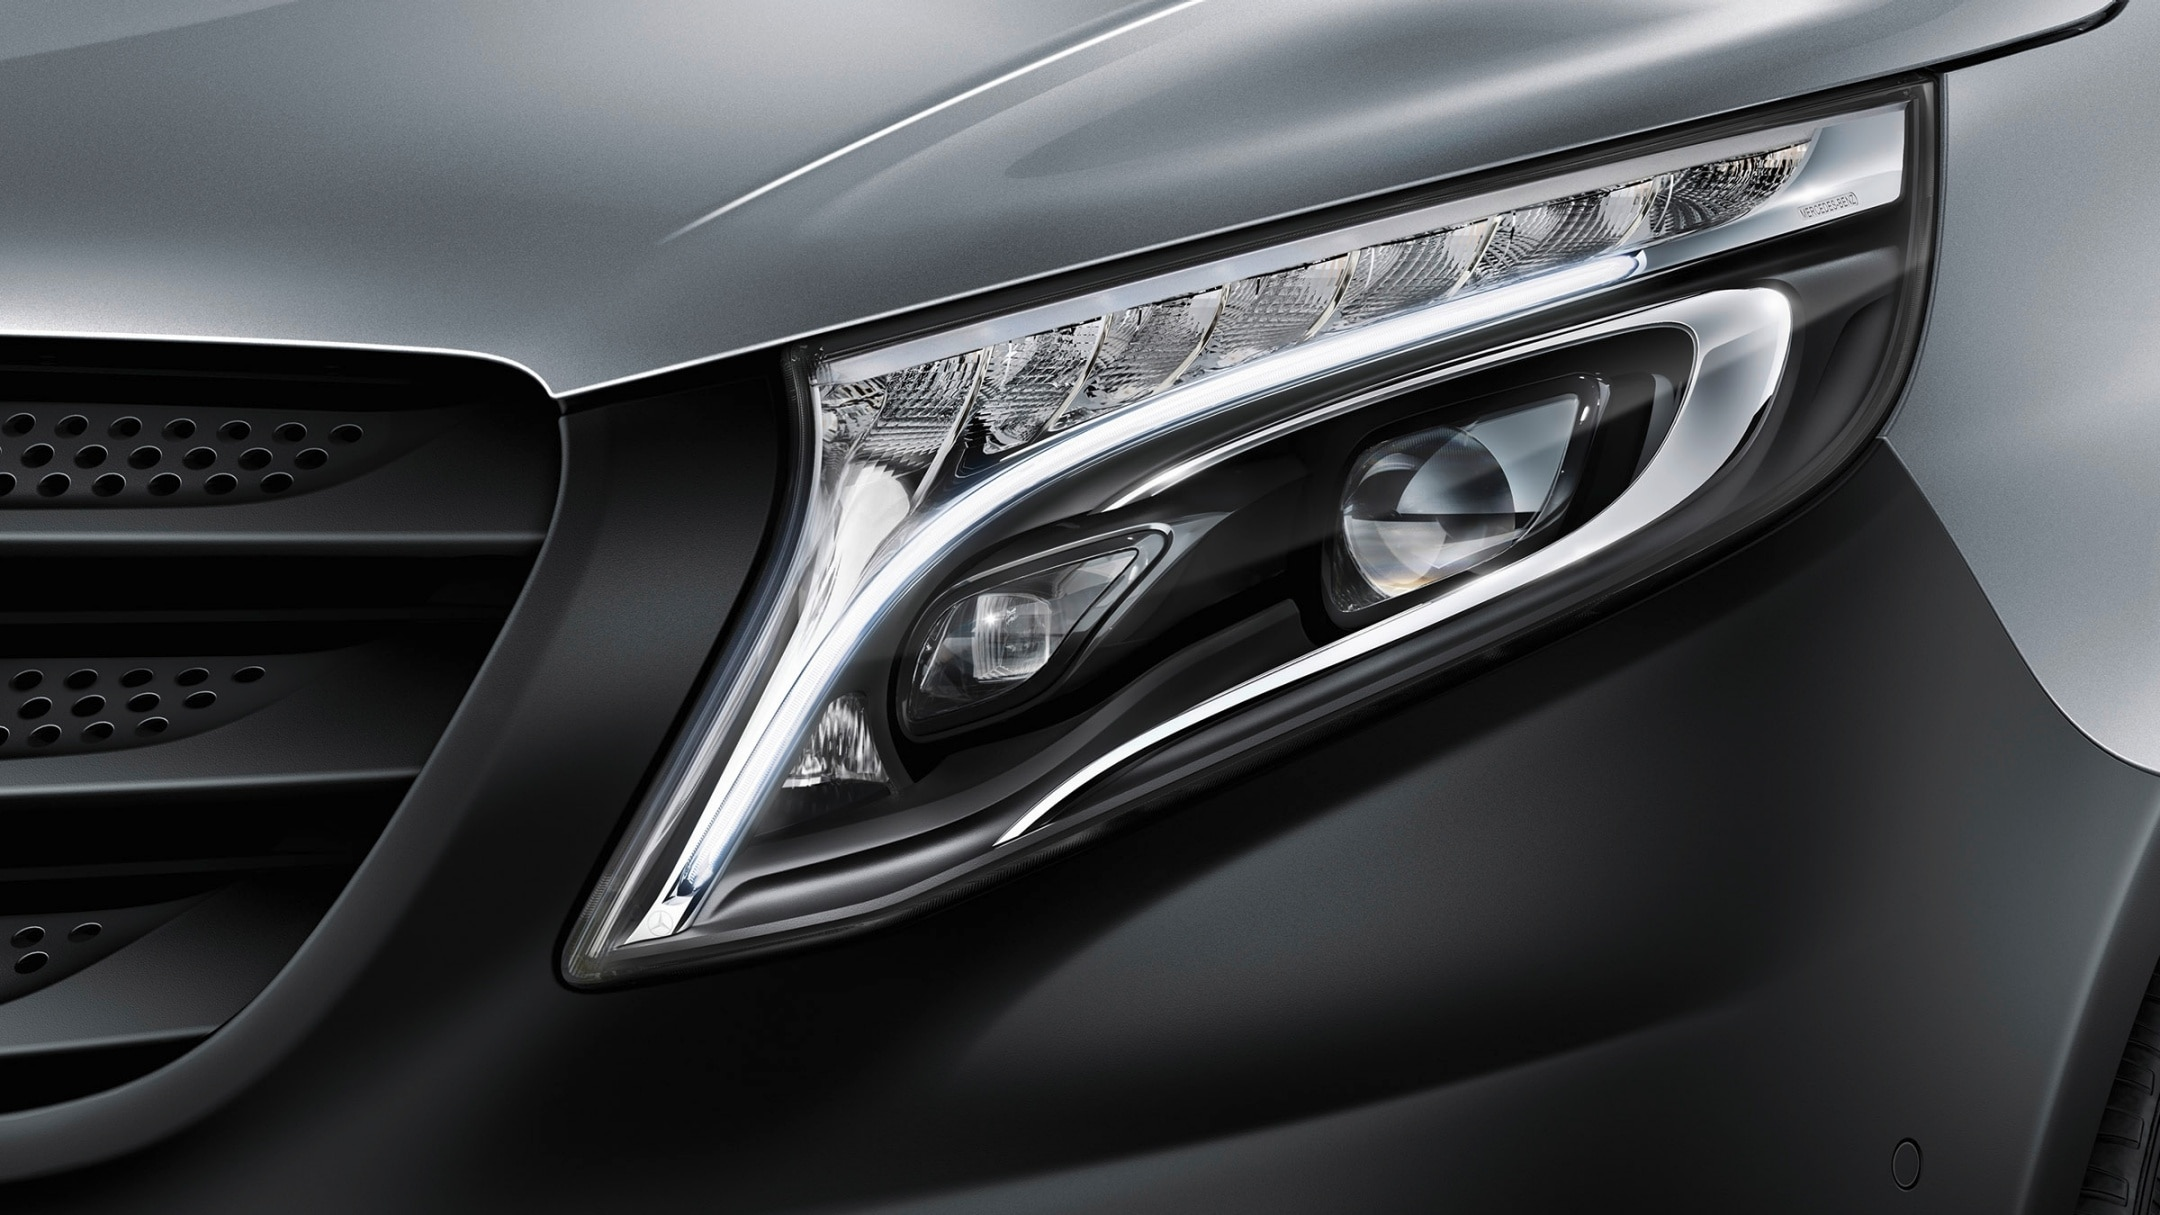 Vito Tourer,LED Intelligent Light System